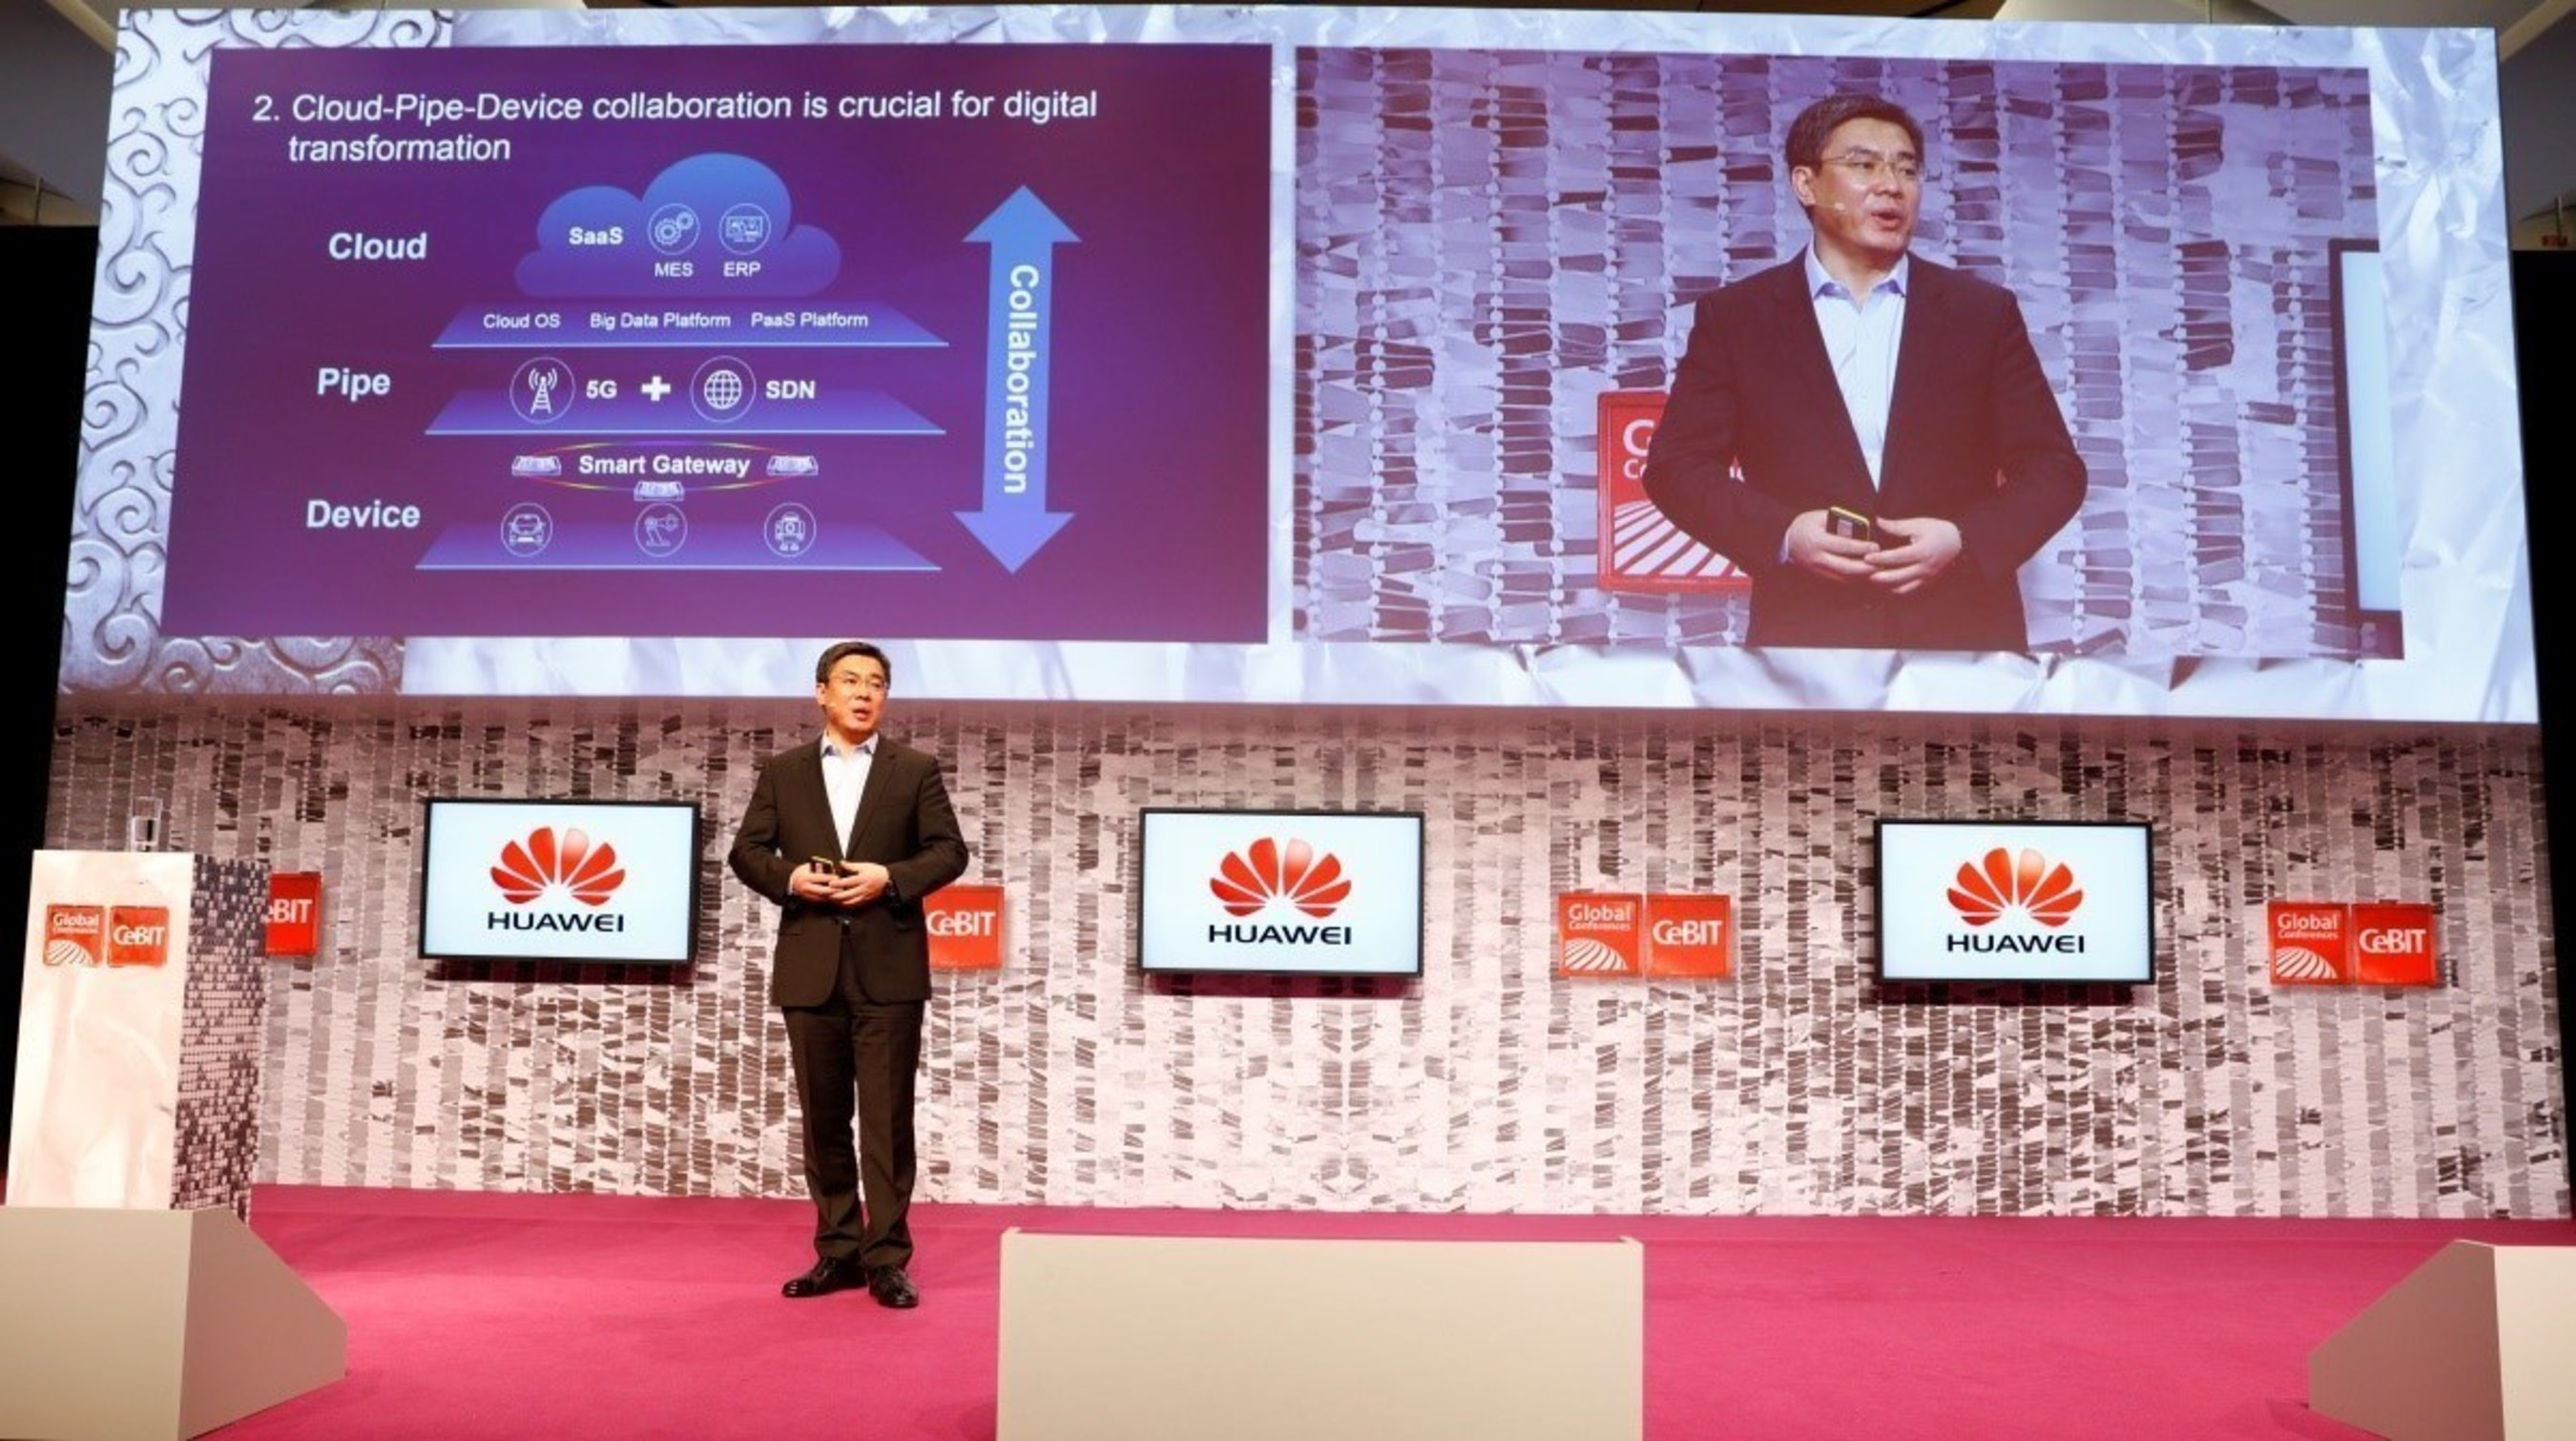 Yan Lida, President of Huawei Enterprise Business Group, delivered a keynote speech at the CeBIT 2016 Global Conference